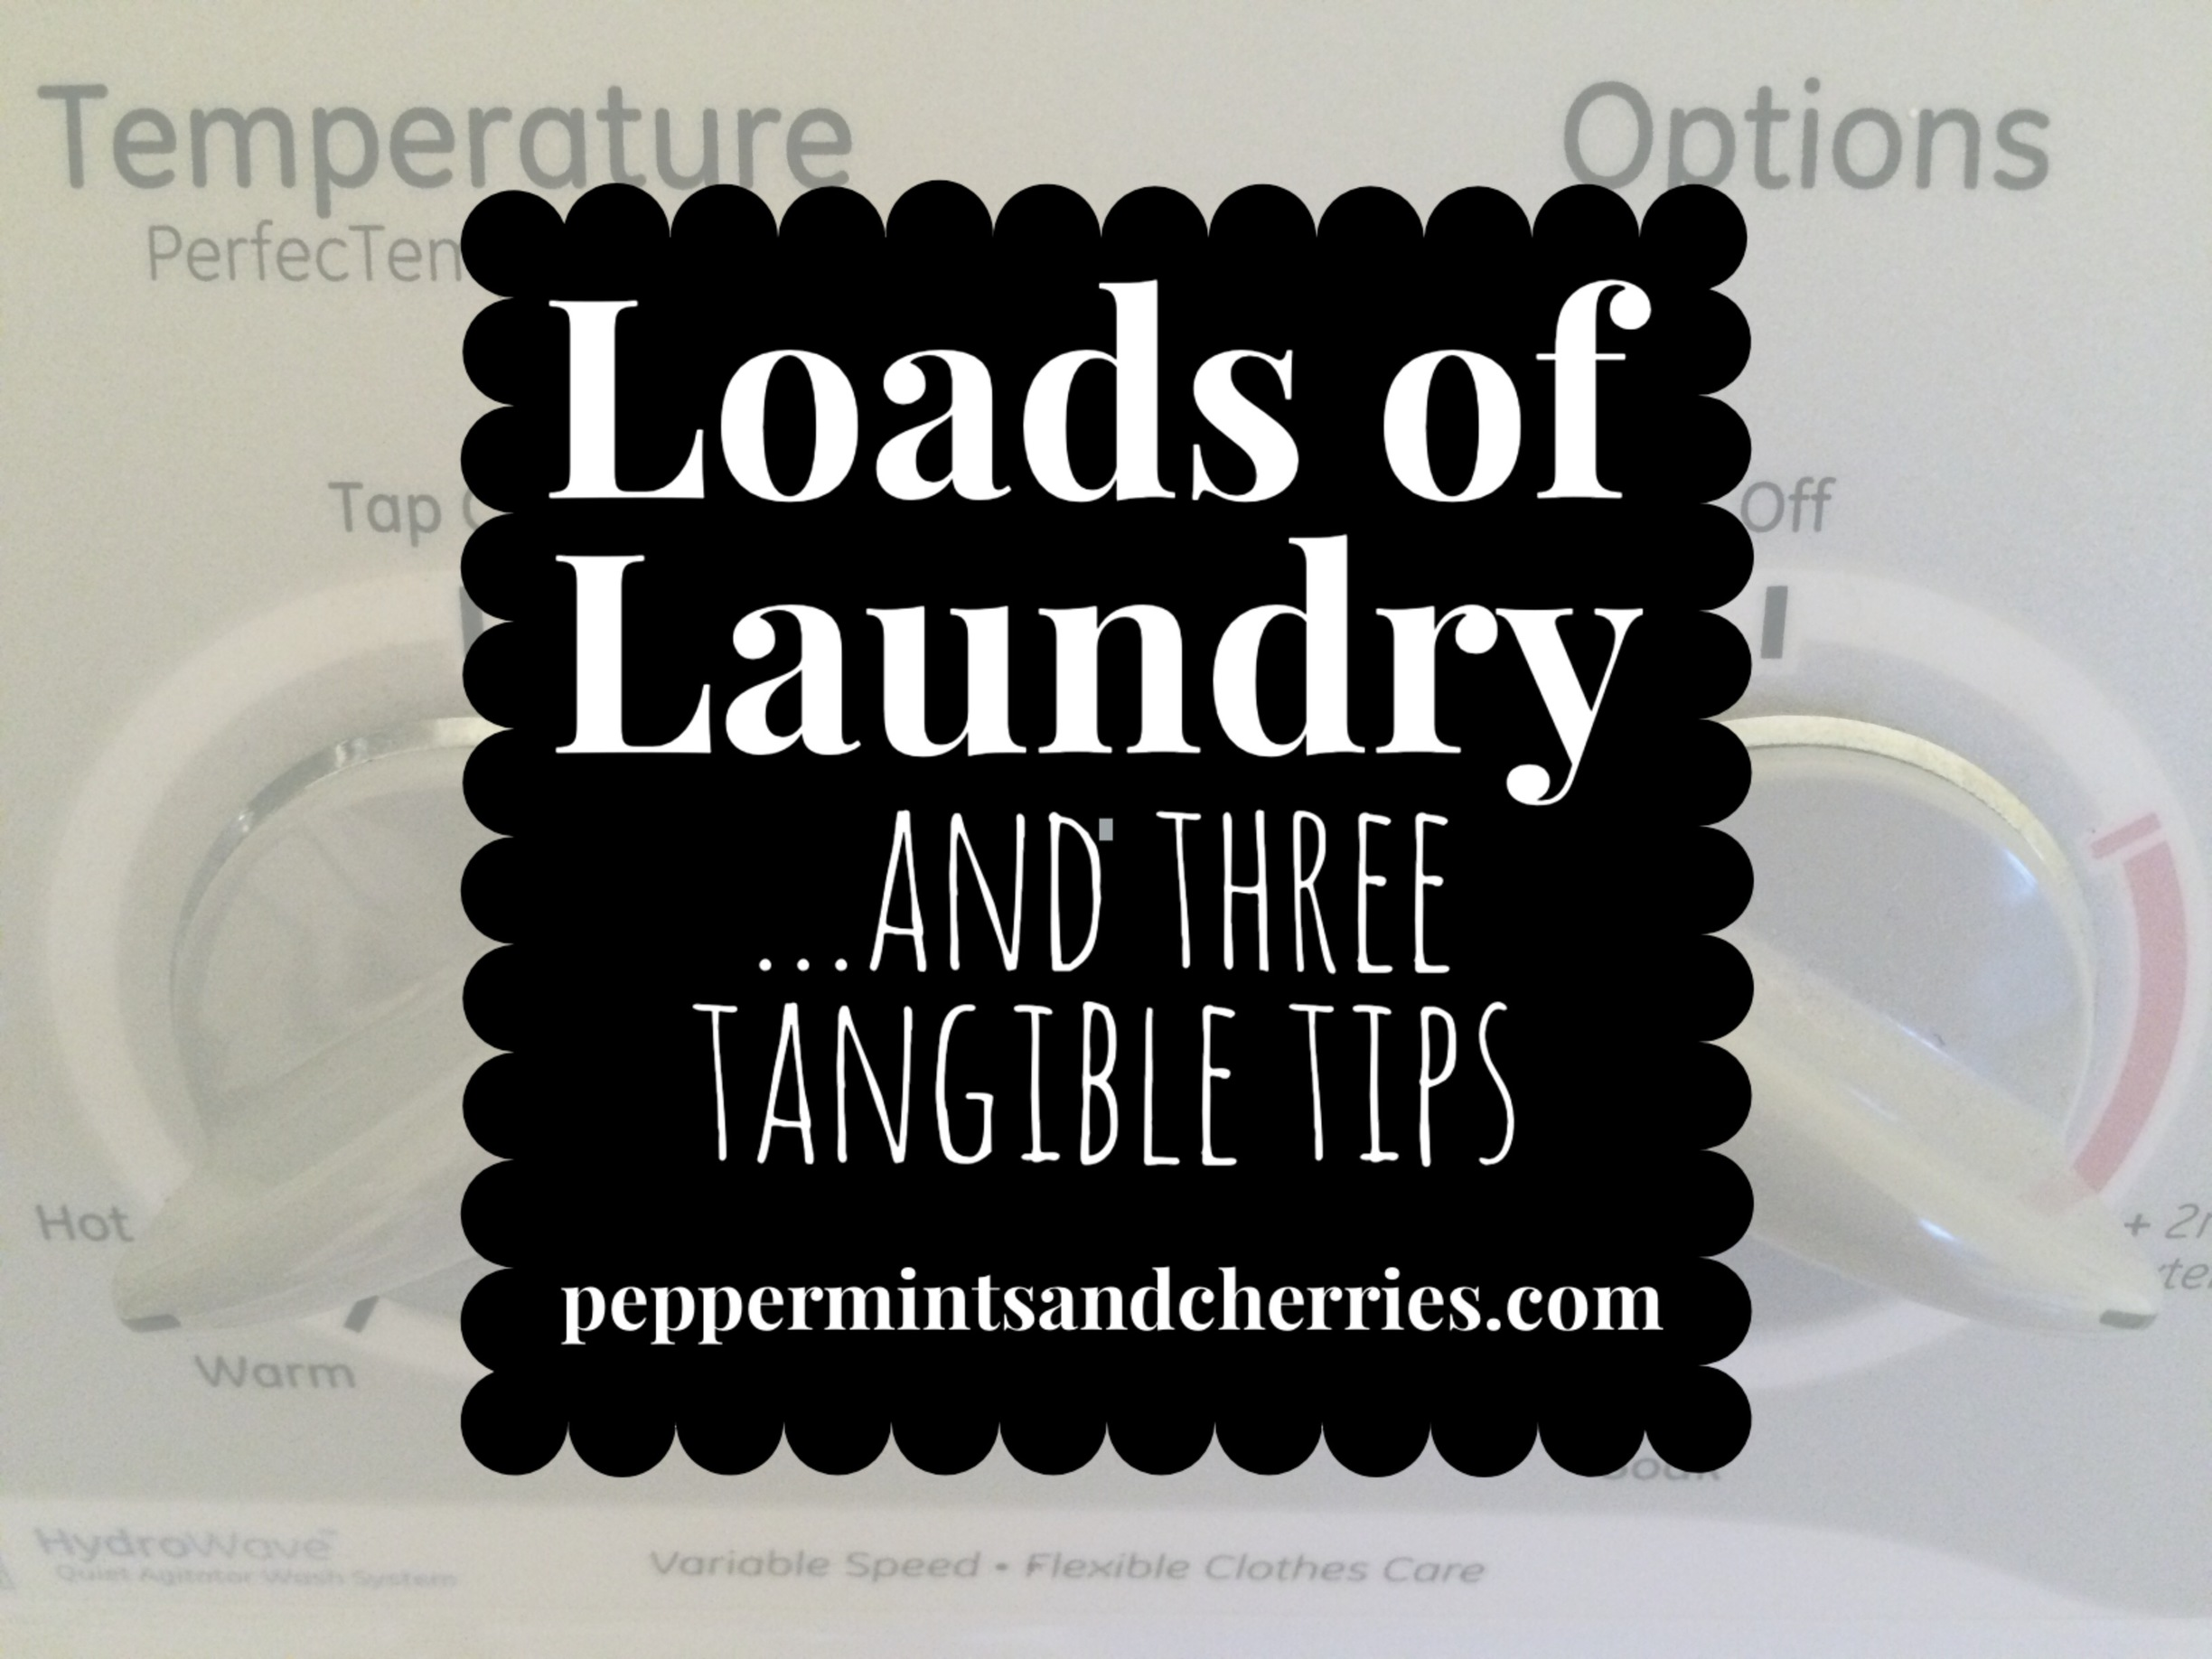 Who loves to do laundry? Probably not most people! Laundry doesn't have to be such a daunting task if the plan of attack is well thought out! Here are three helpful laundry tips for wives and moms. #laundry #cleaning #tipsformoms #laundrytips #cleaninghacks  Loads of Laundry and Three Tangible Tips, Kristin's Peppermints and Cherries Blog